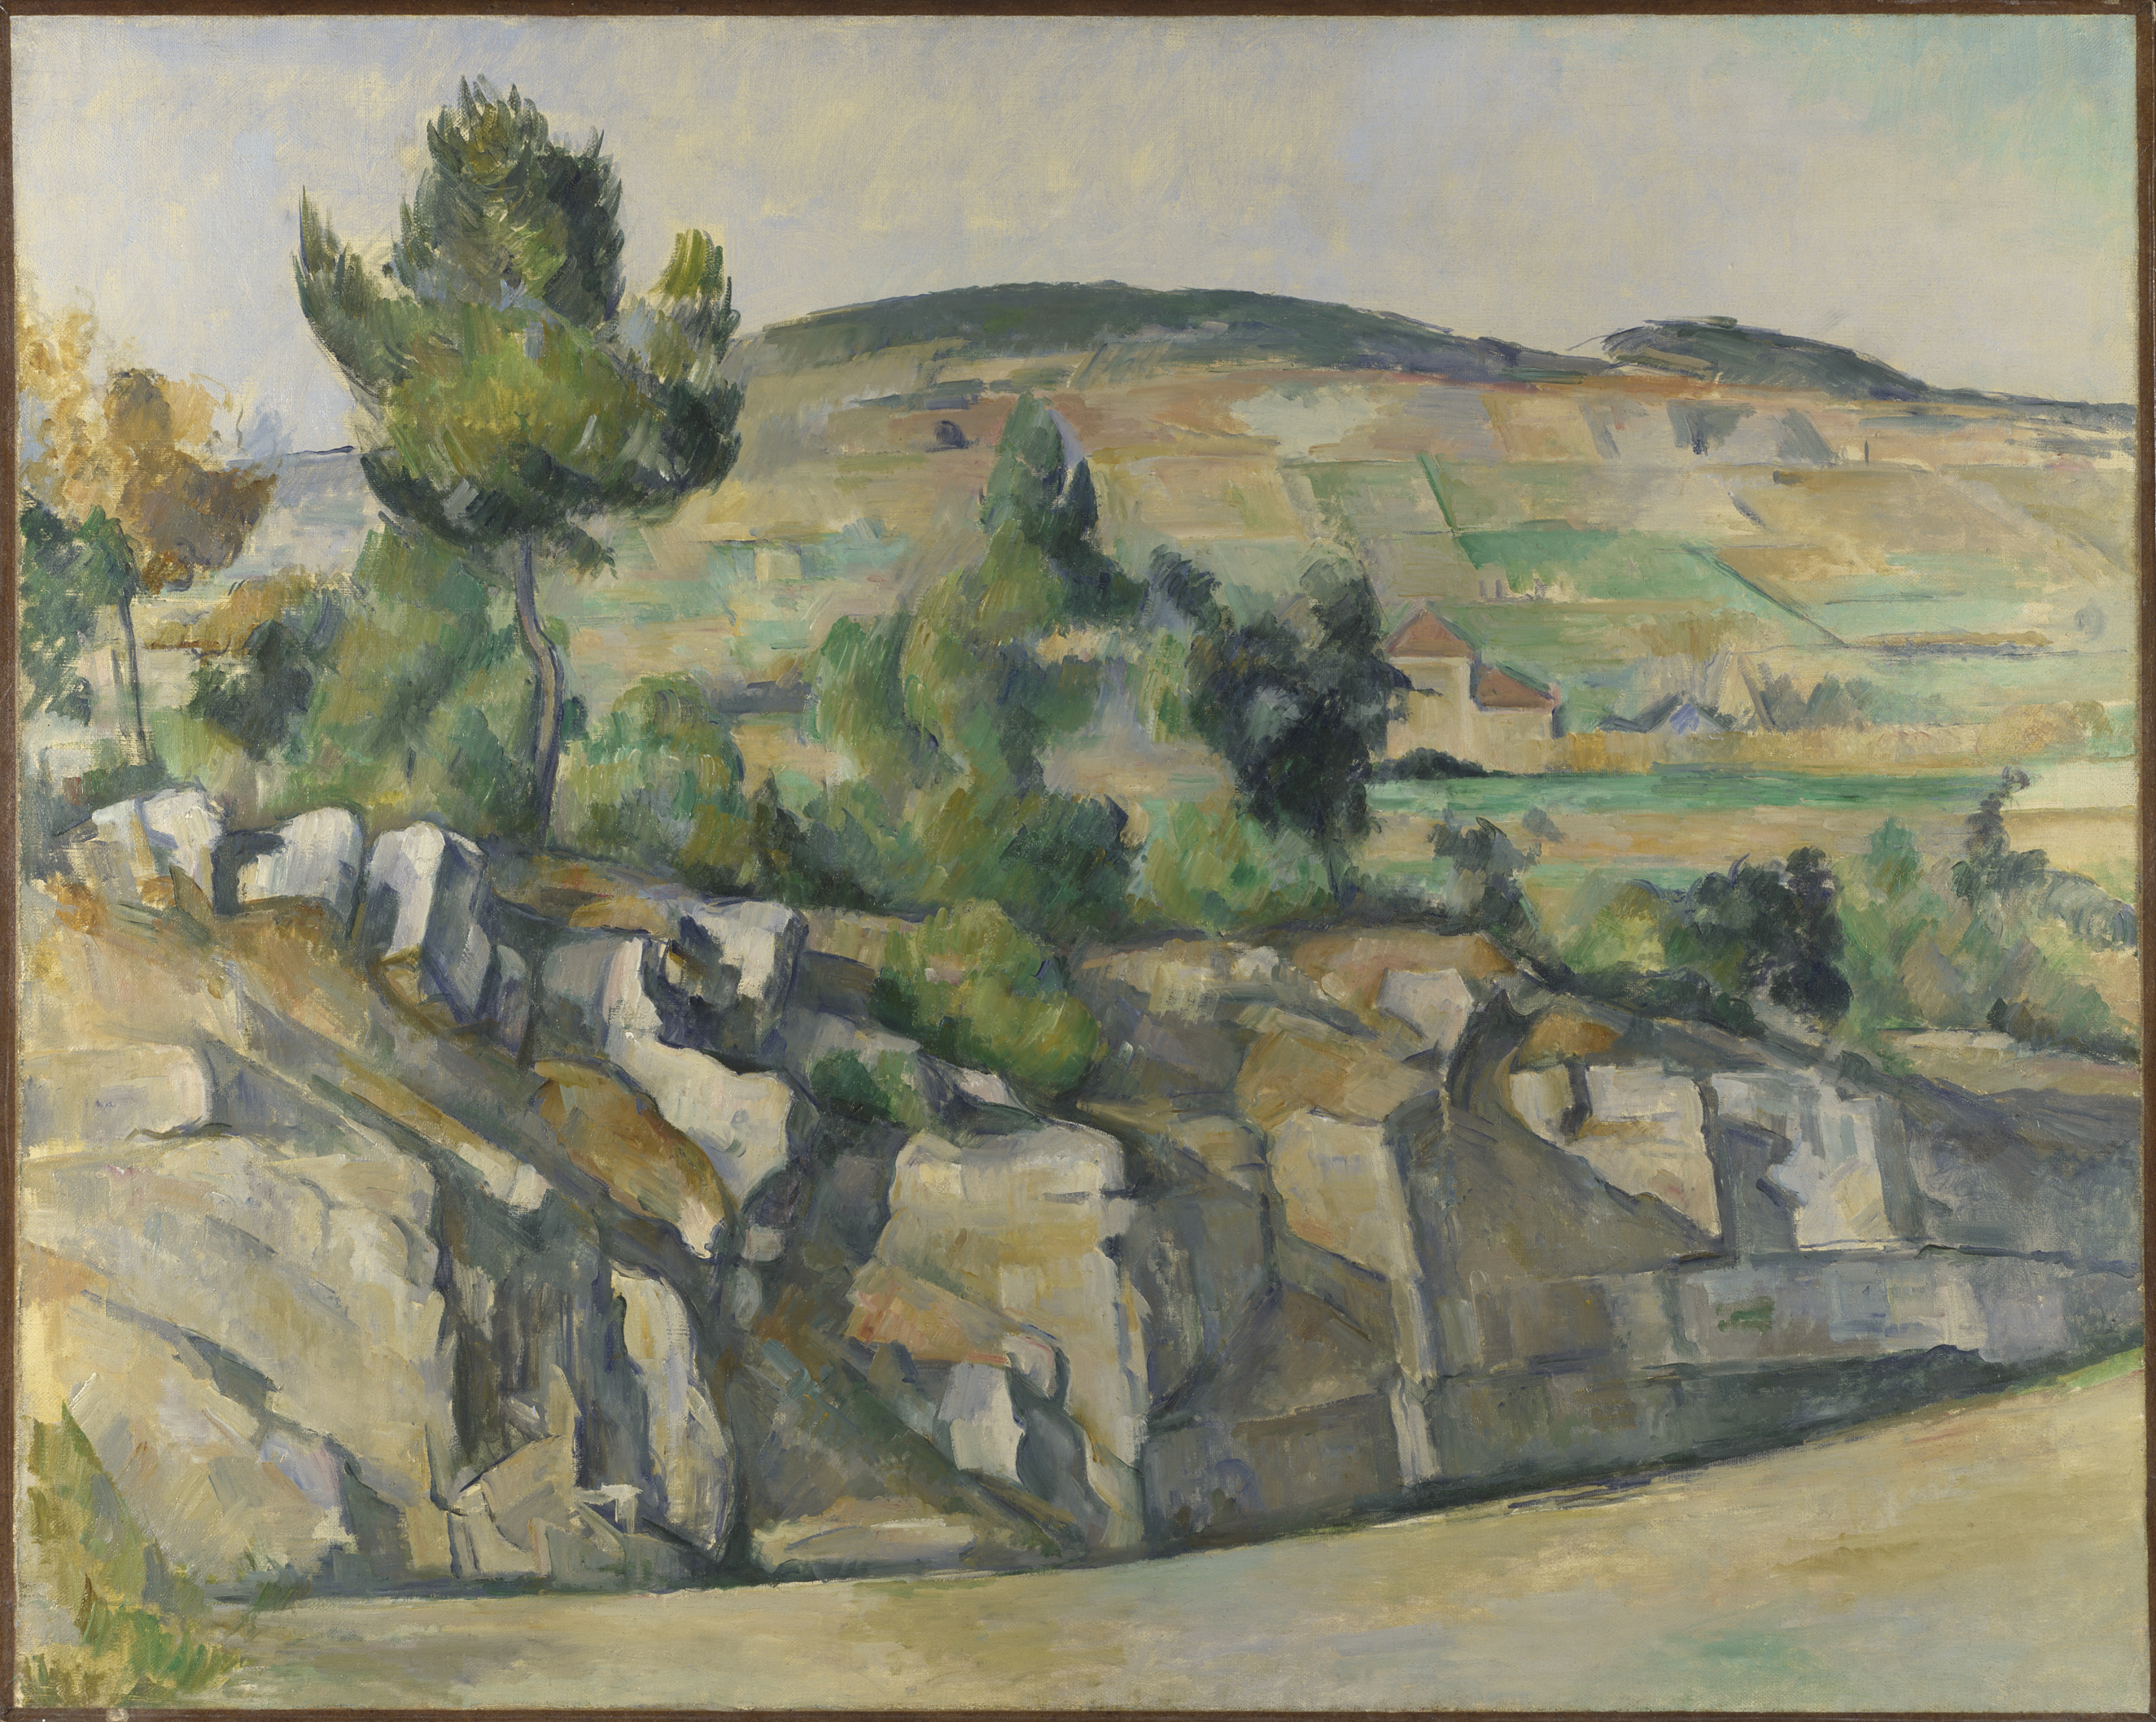 Hillside in Provence - Paul Cézanne, c. 1890-2